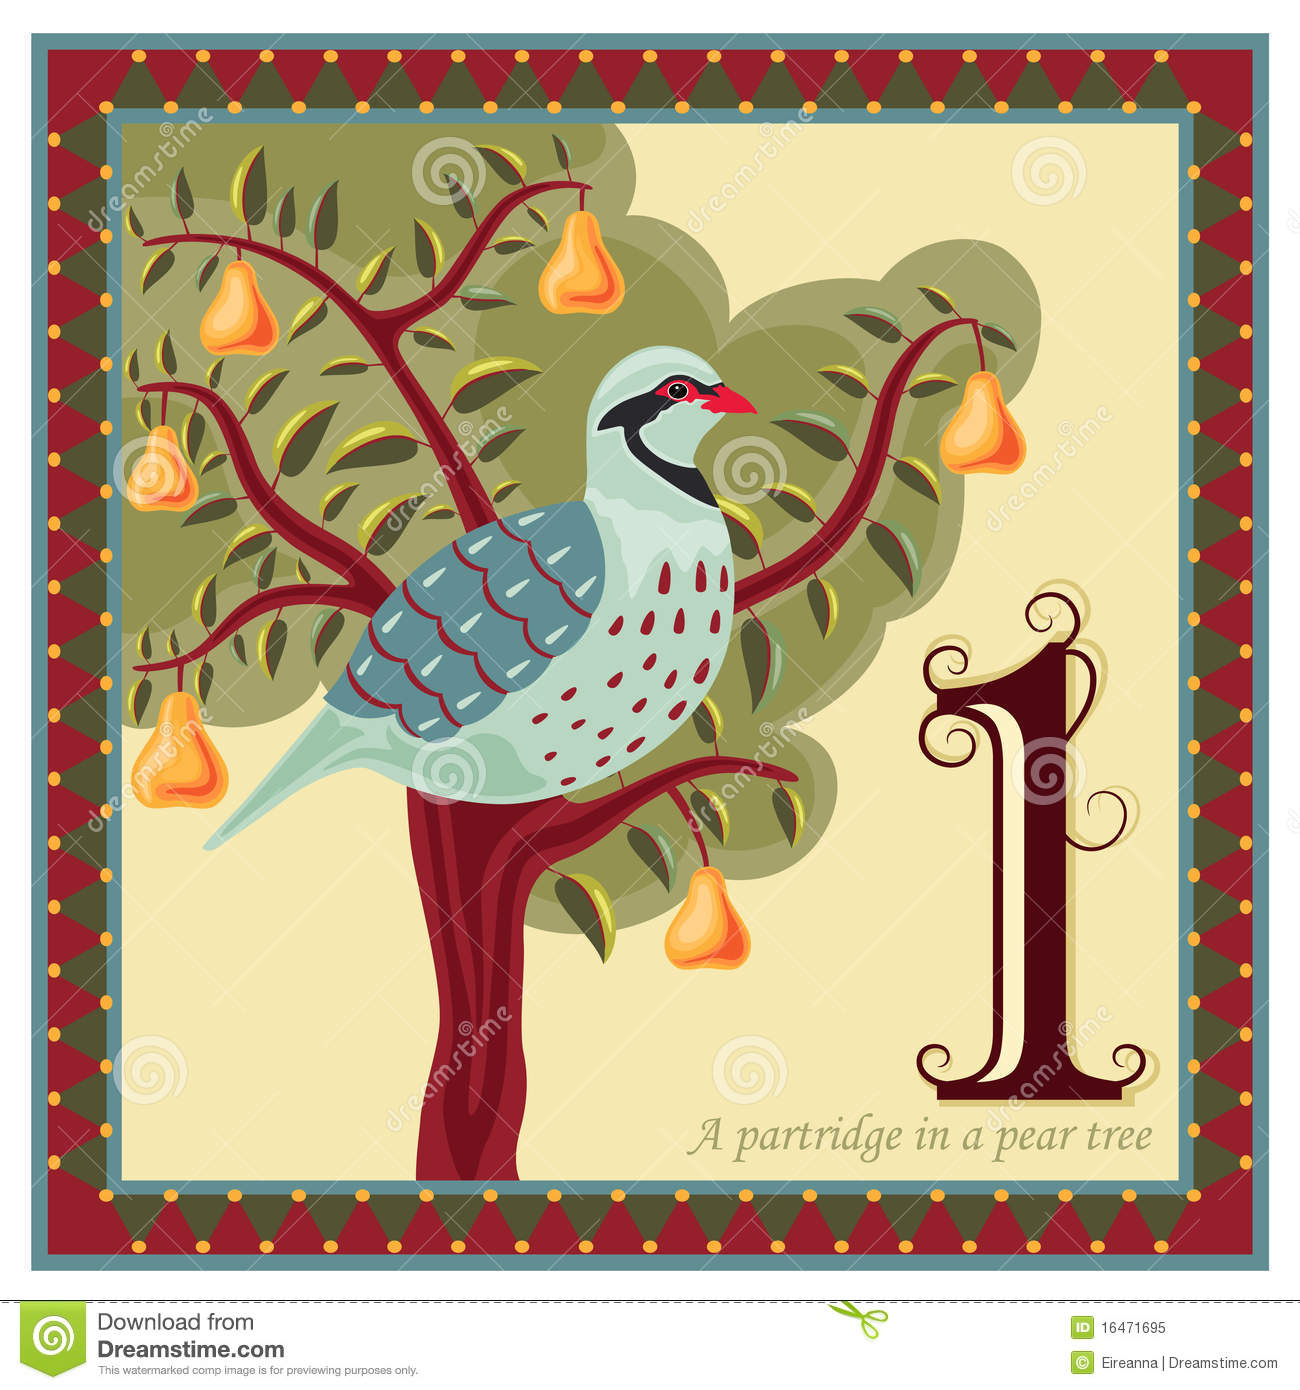 The 12 Days Of Christmas Stock Vector Illustration Of